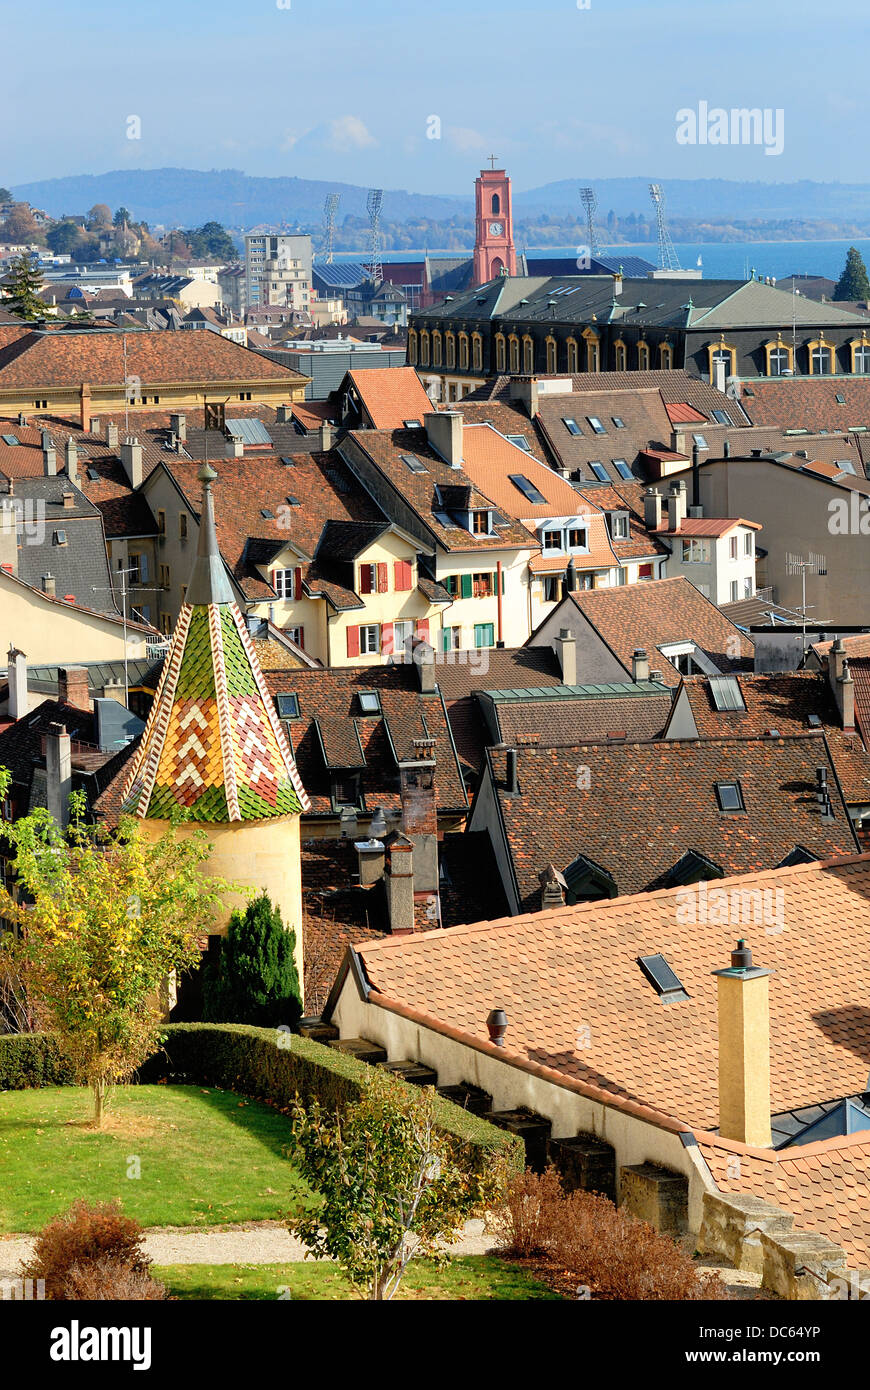 Neuchatel city, Switzerland - Stock Image